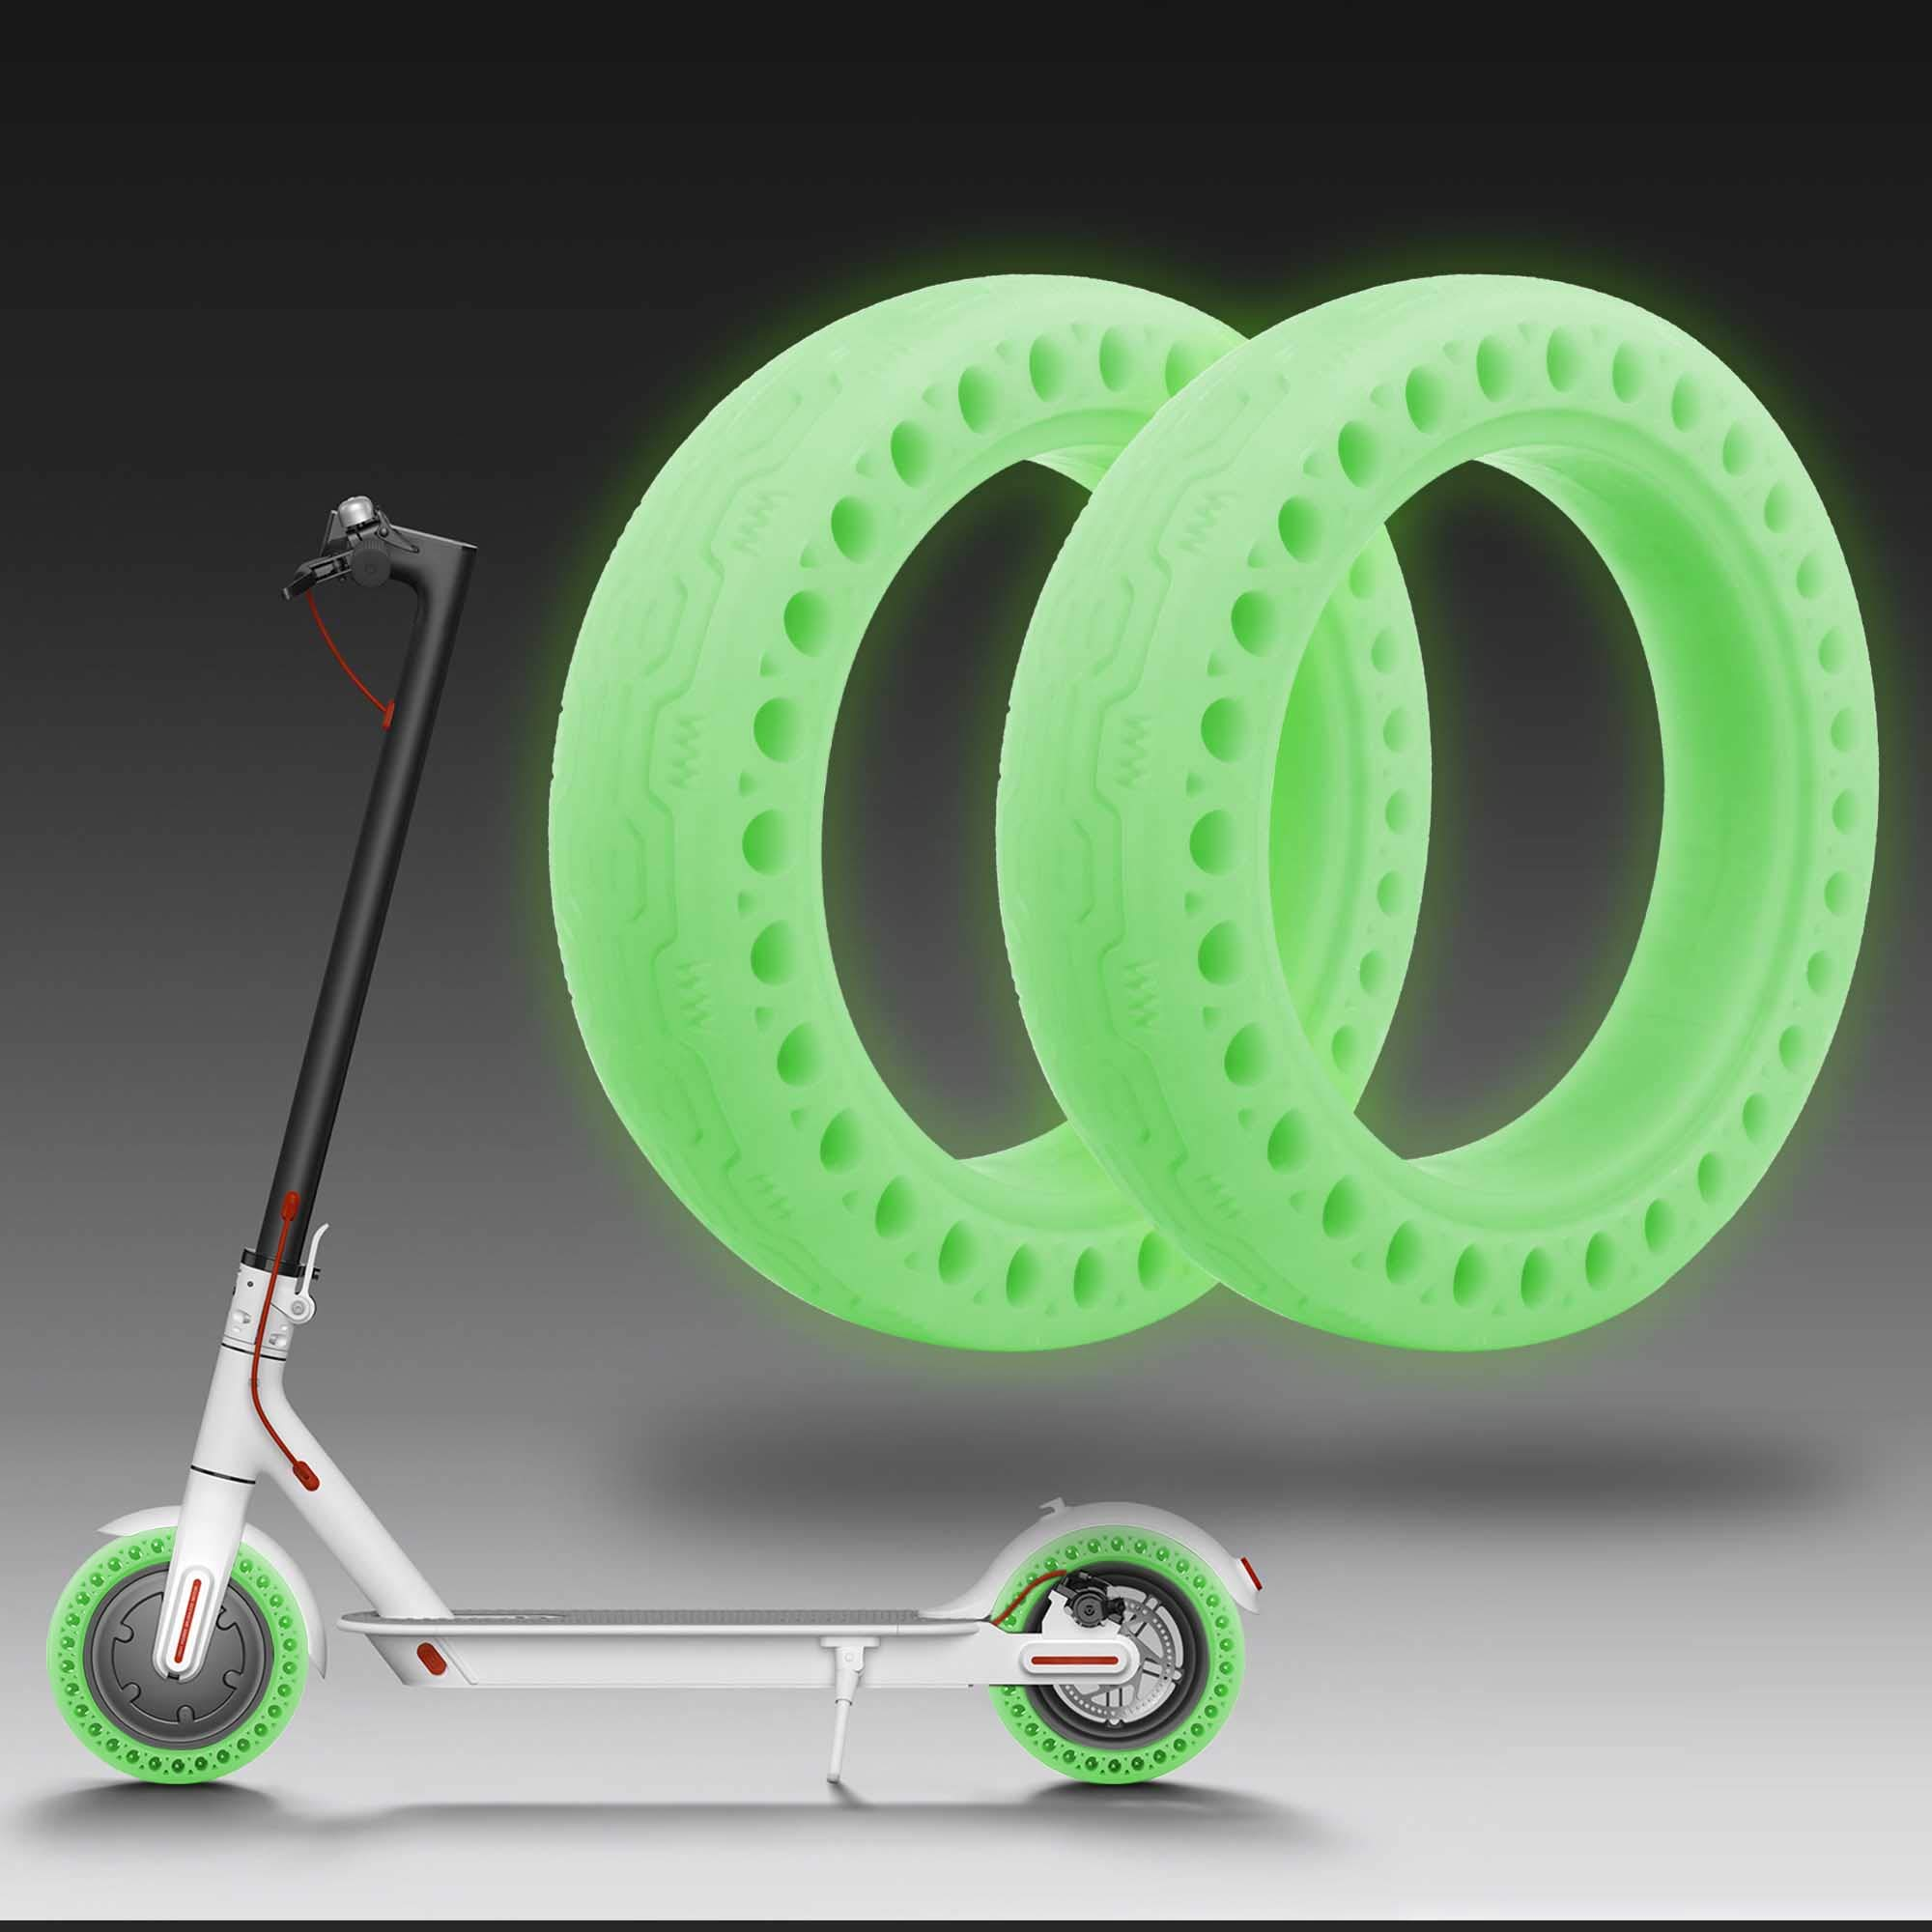 TOMALL Honeycomb Rubber Solid Tire 8.5 Inch Fluorescent Tire Tubeless Solid Tyre 2PCS for Xiaomi M365 Electric Scooter